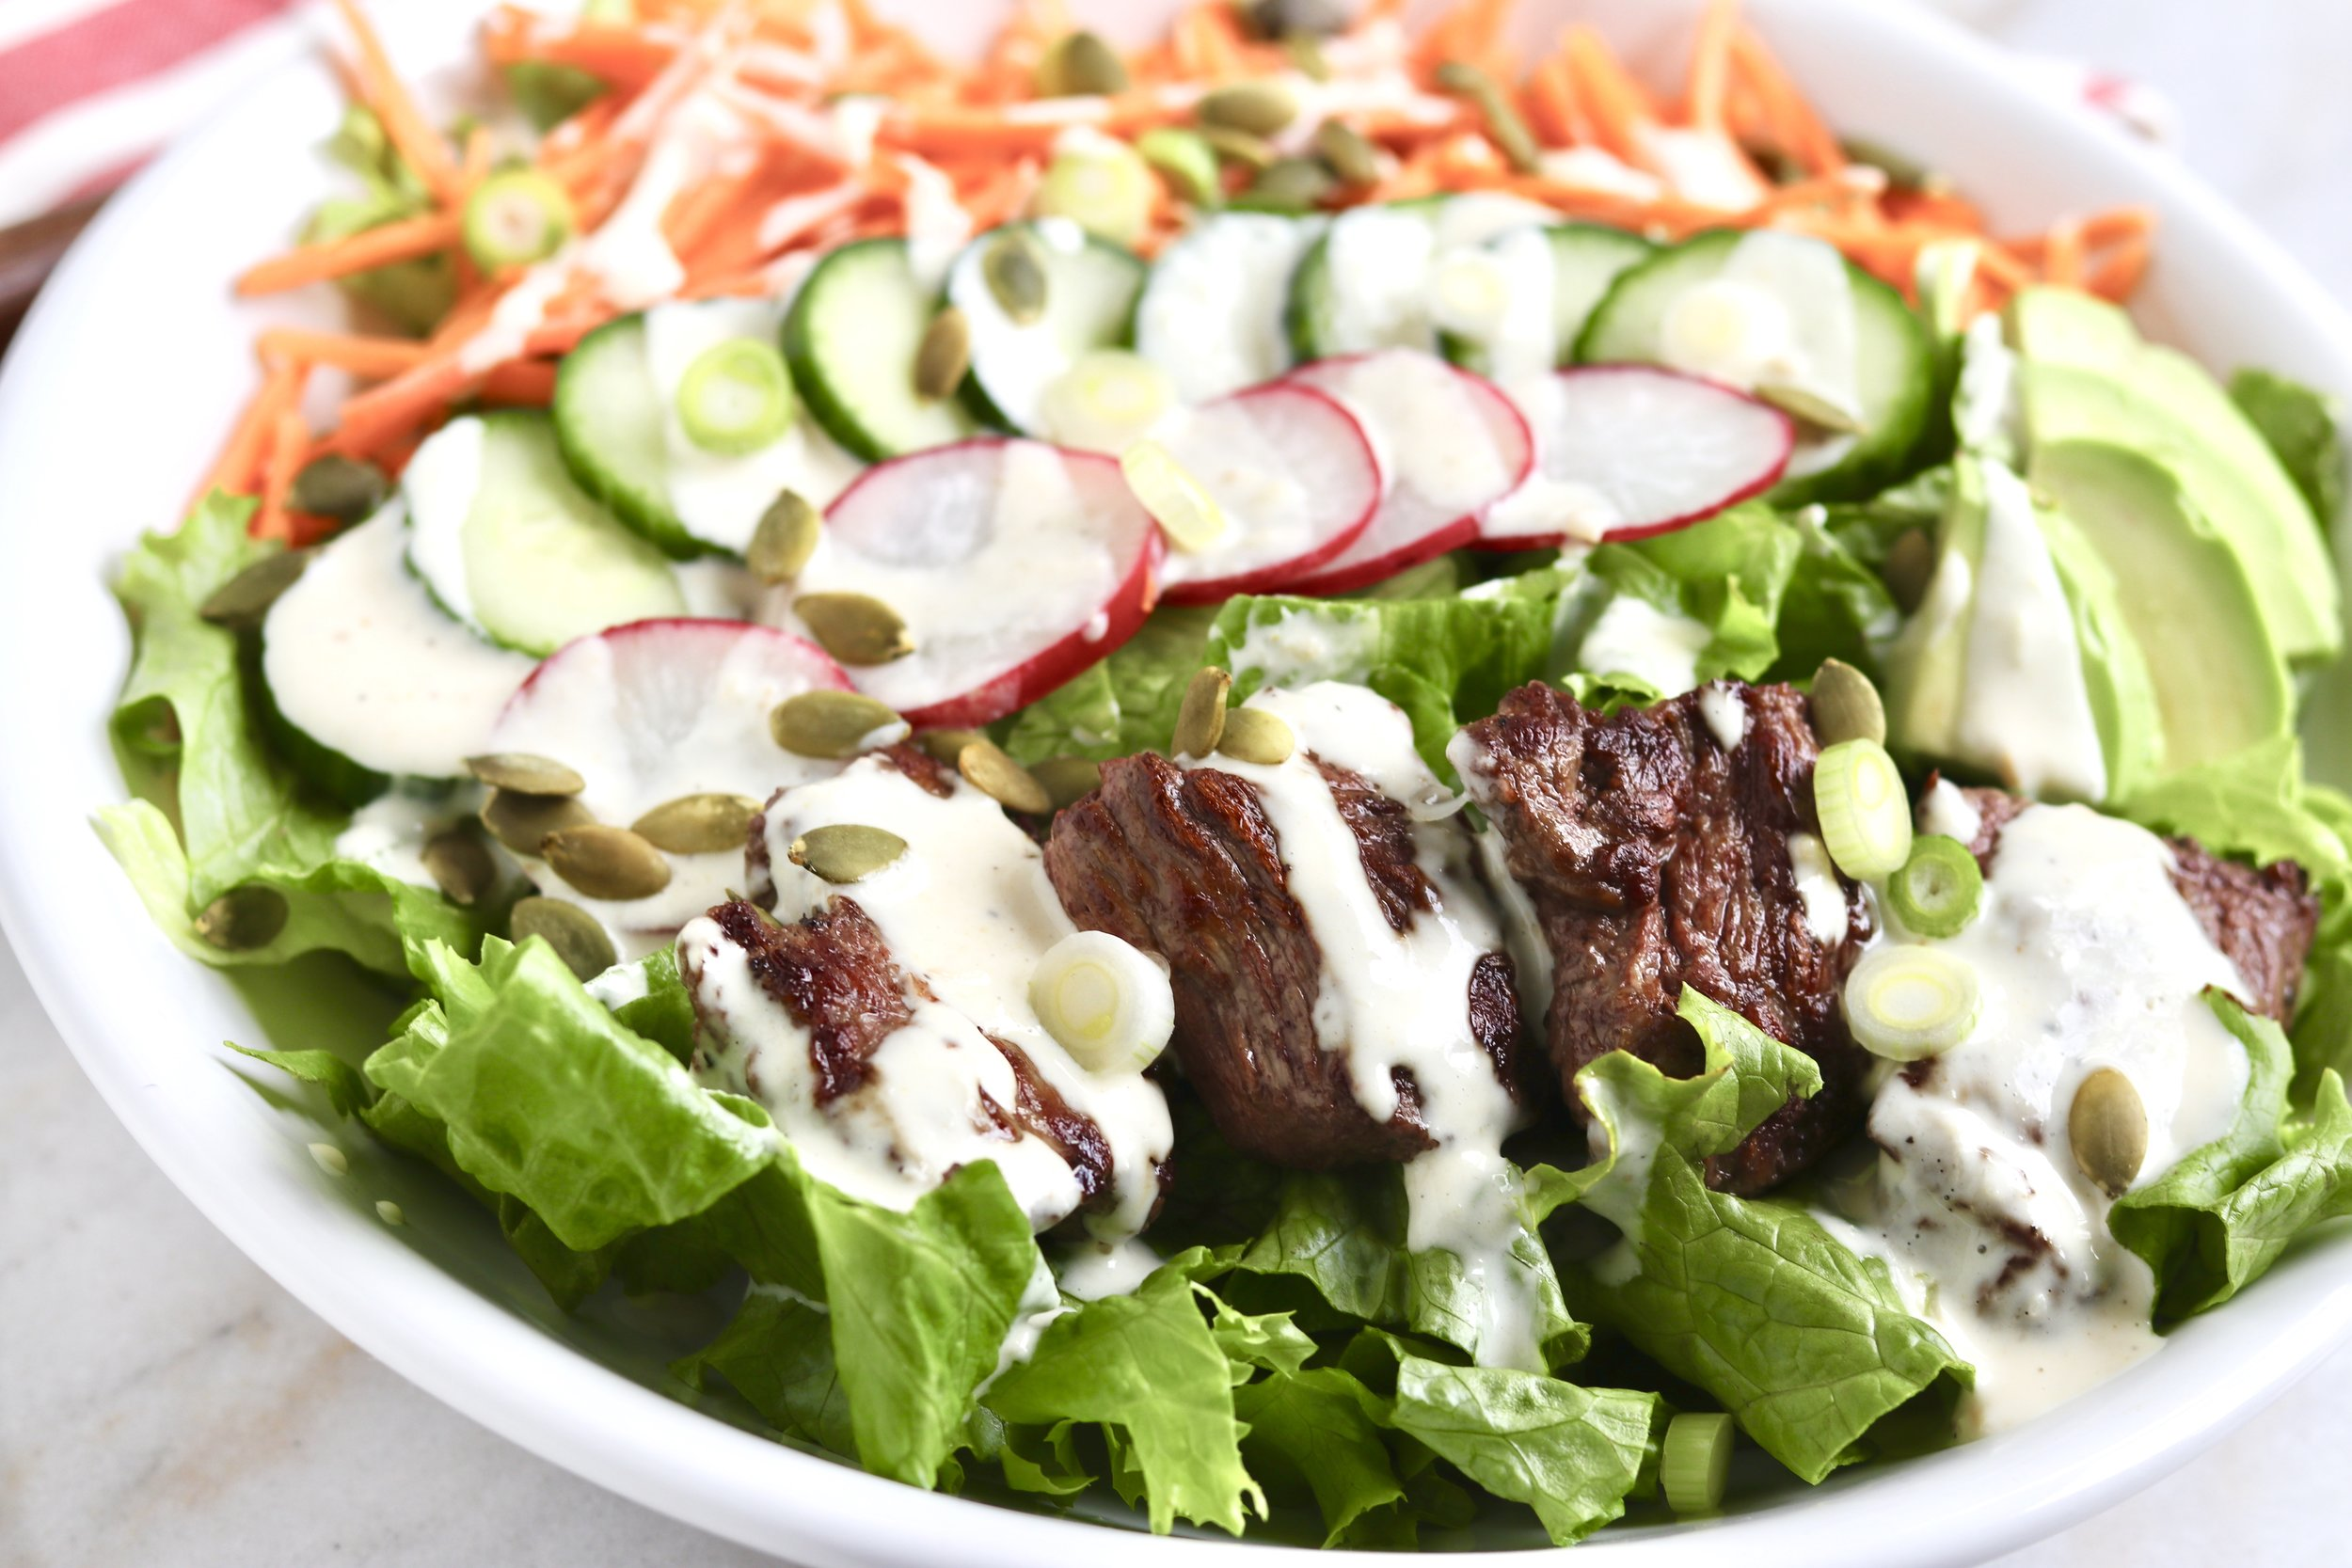 Steak Salad with Creamy Garlic Horseradish Dressing by I'd Eat That Food